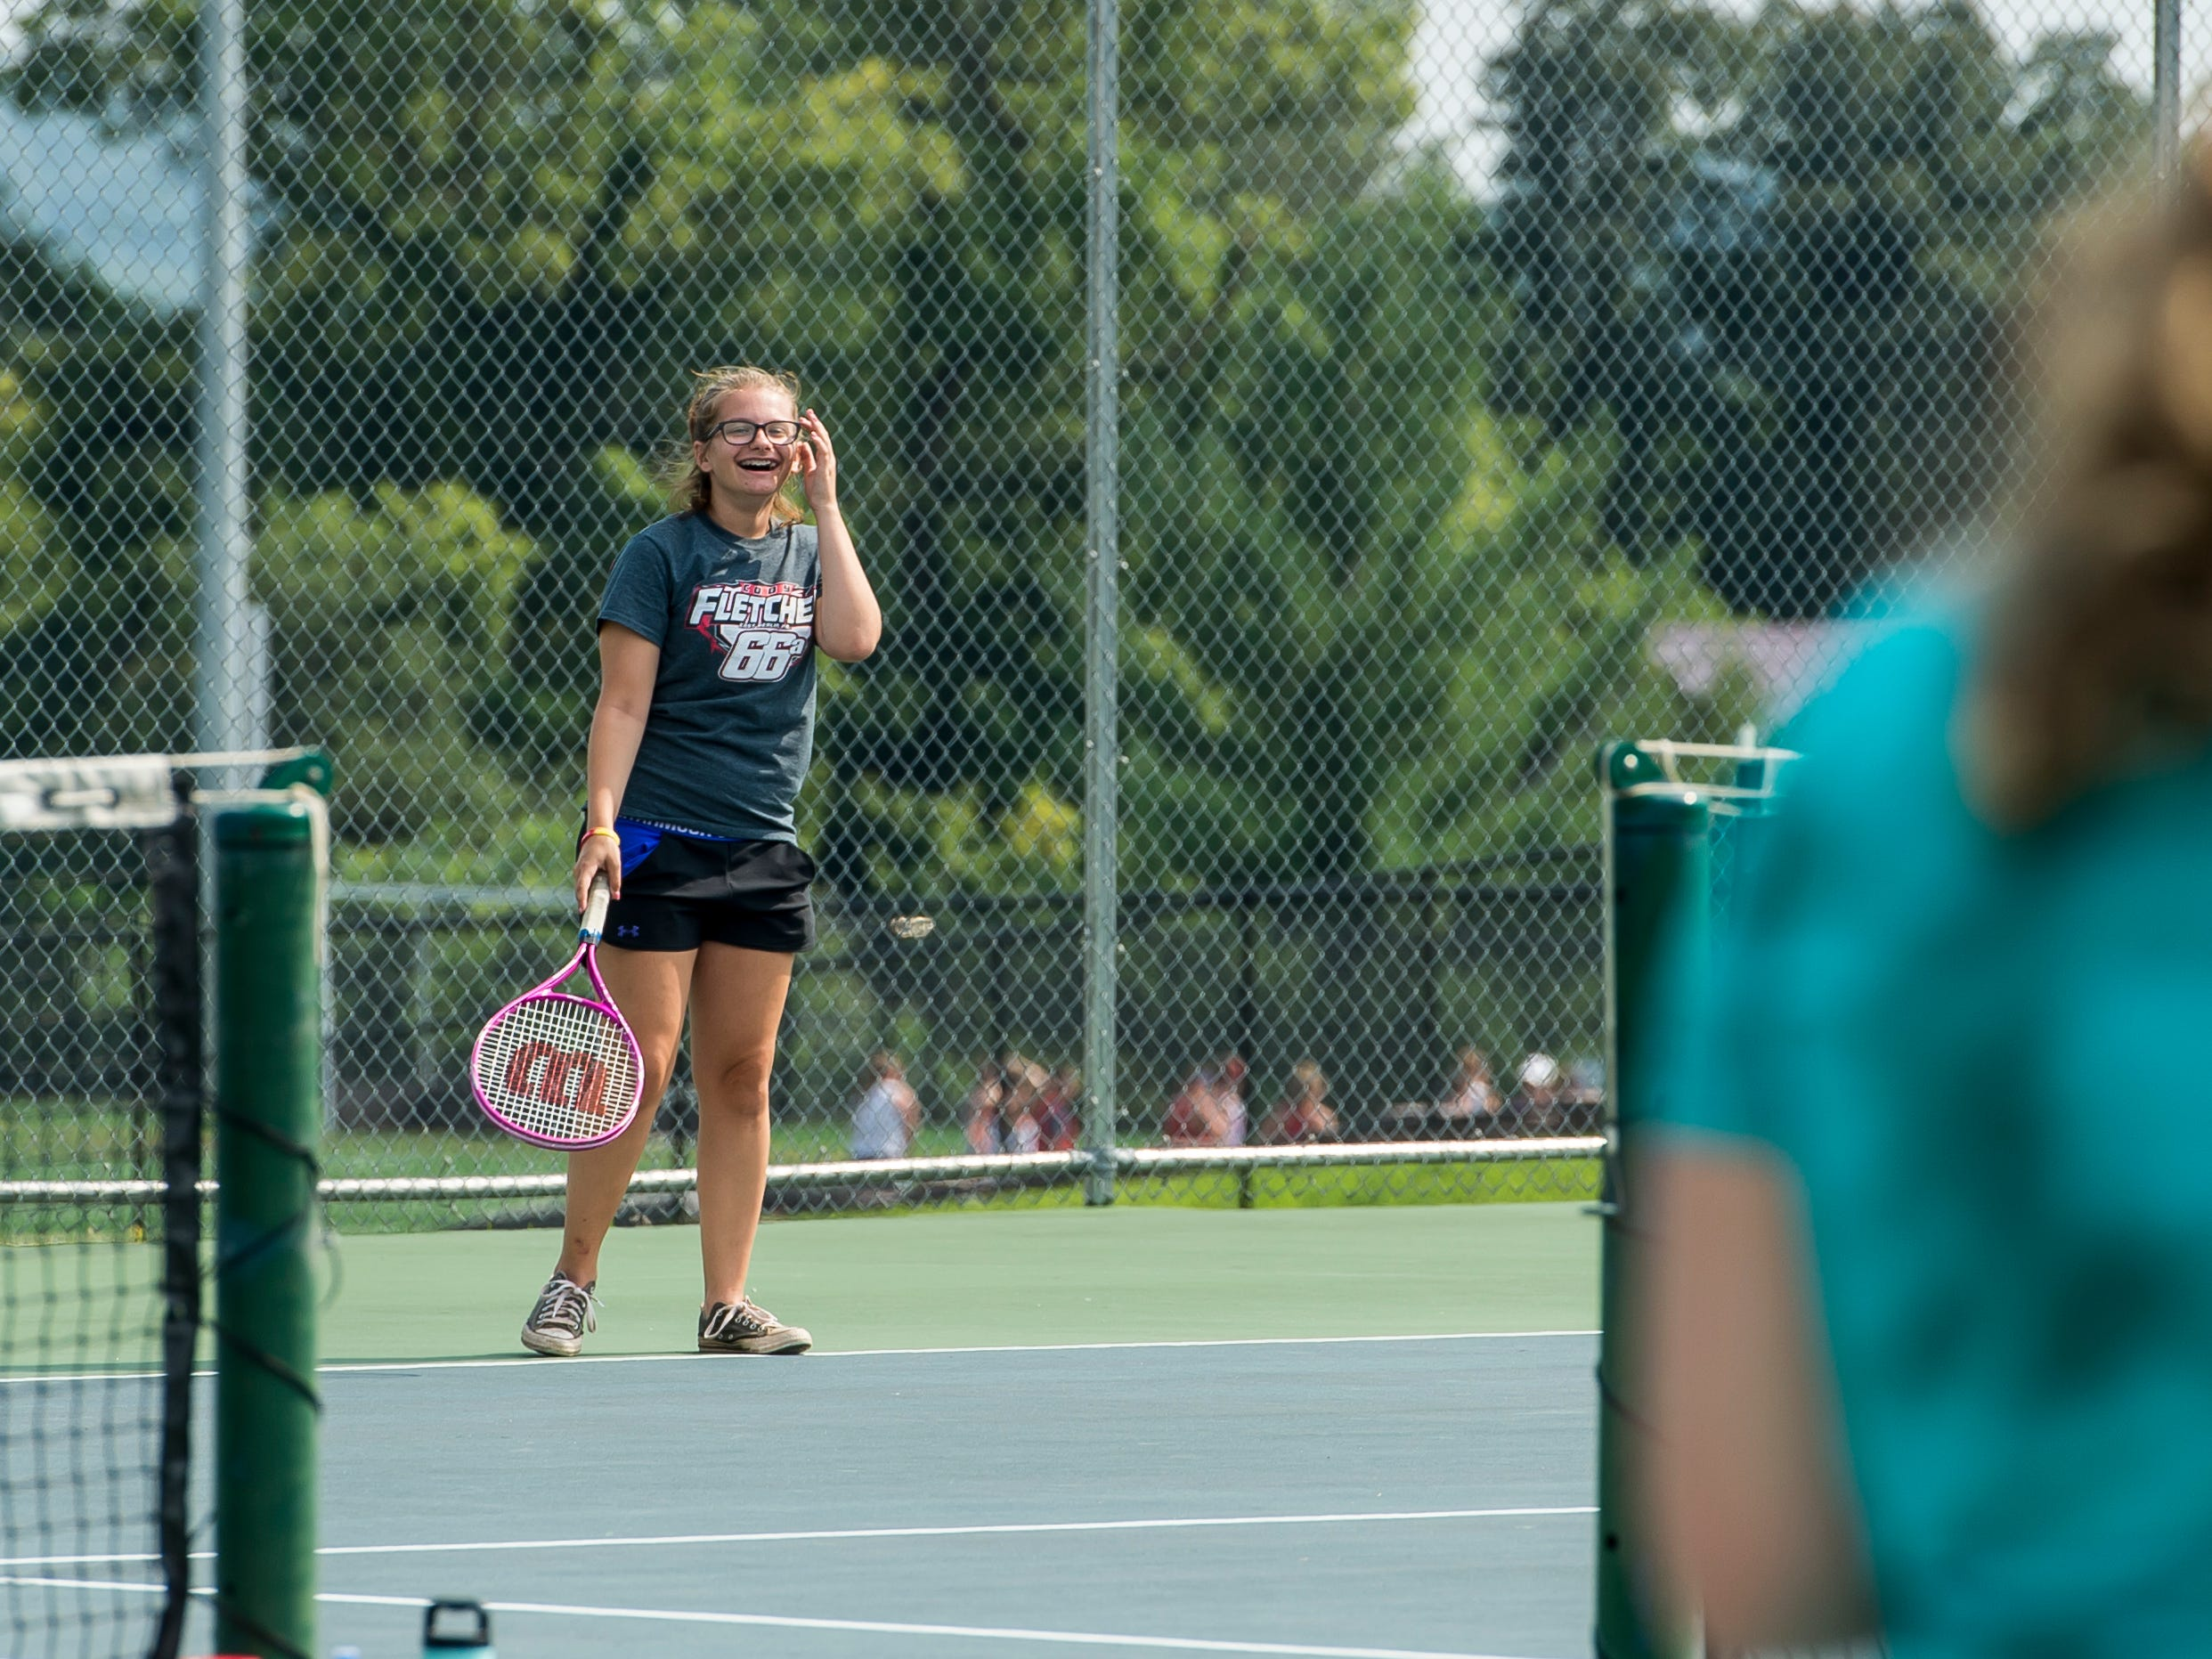 Olivia Snelbaker laughs after accidentally hitting a ball into another court during Bermudian Springs girls tennis practice on Thursday, August 16, 2018.